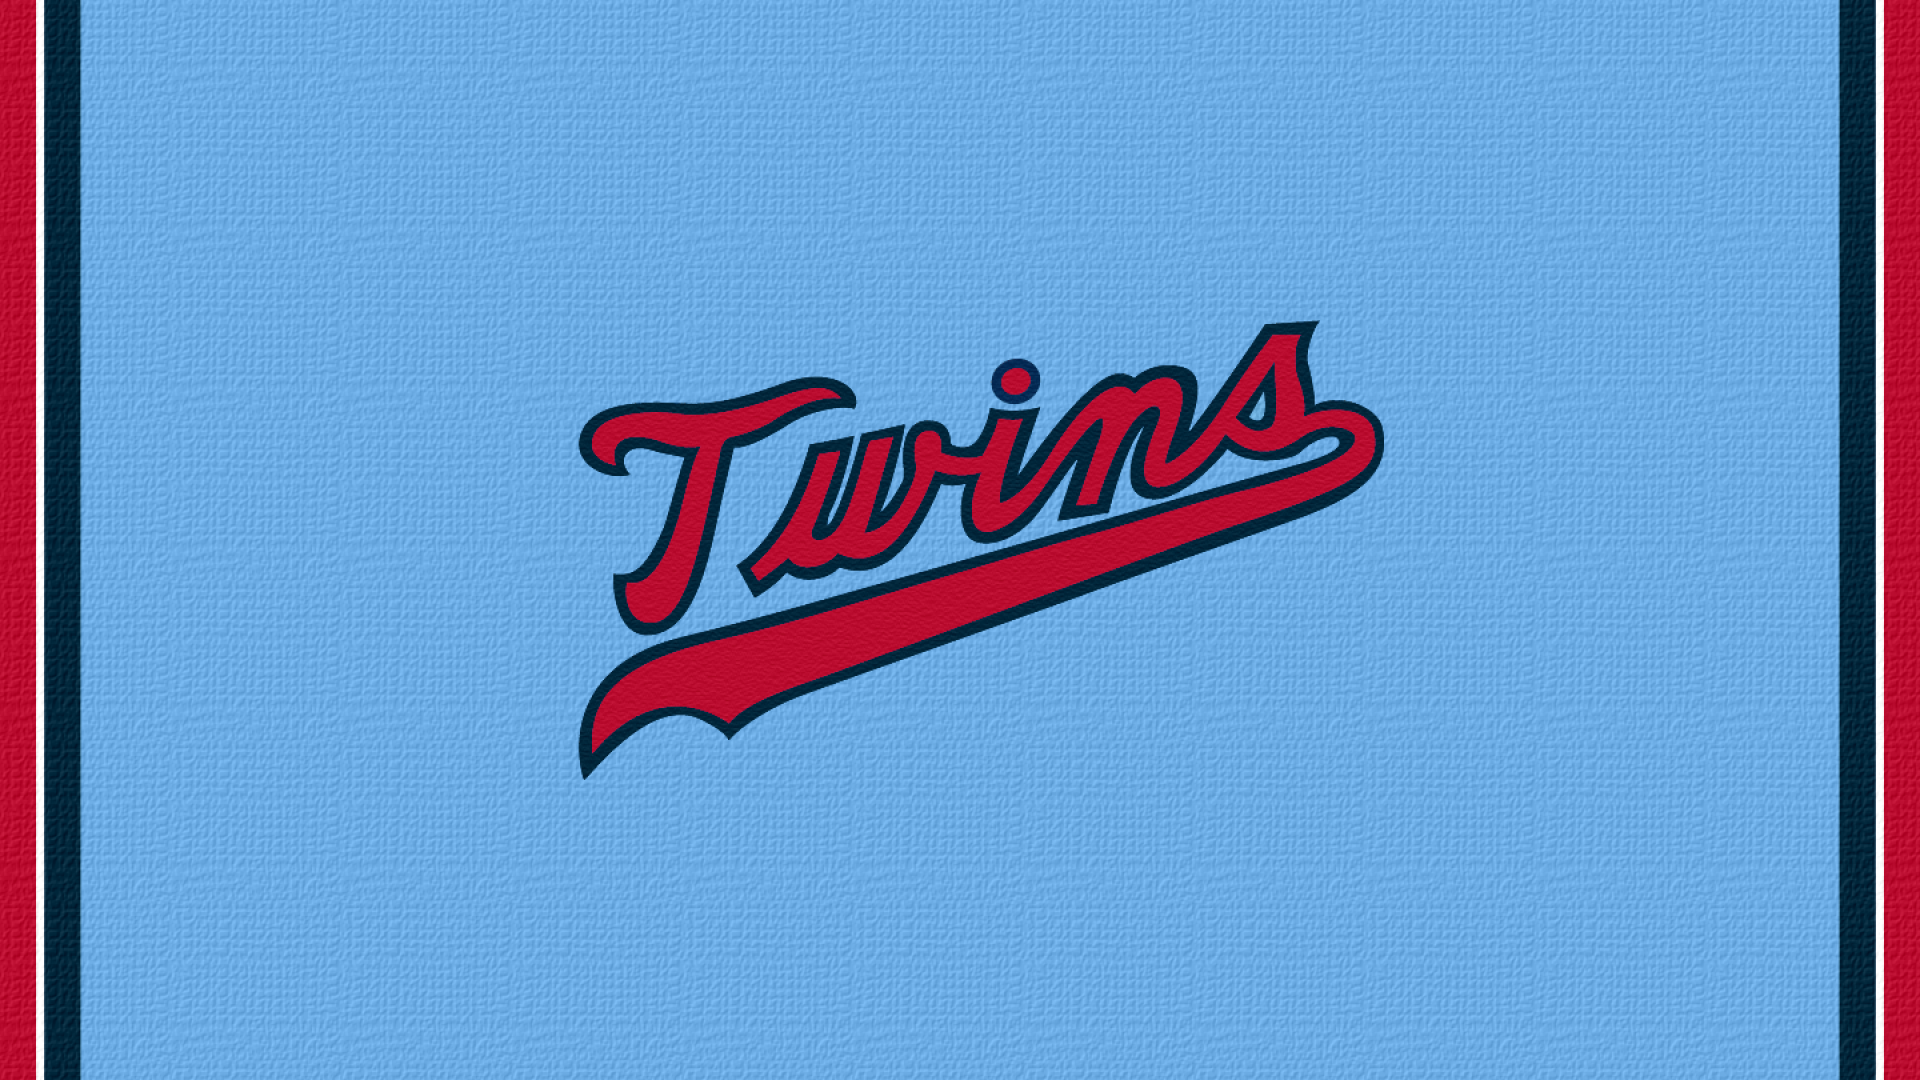 VTD.53 Gallery: Minnesota Twins, 1.72 Mb